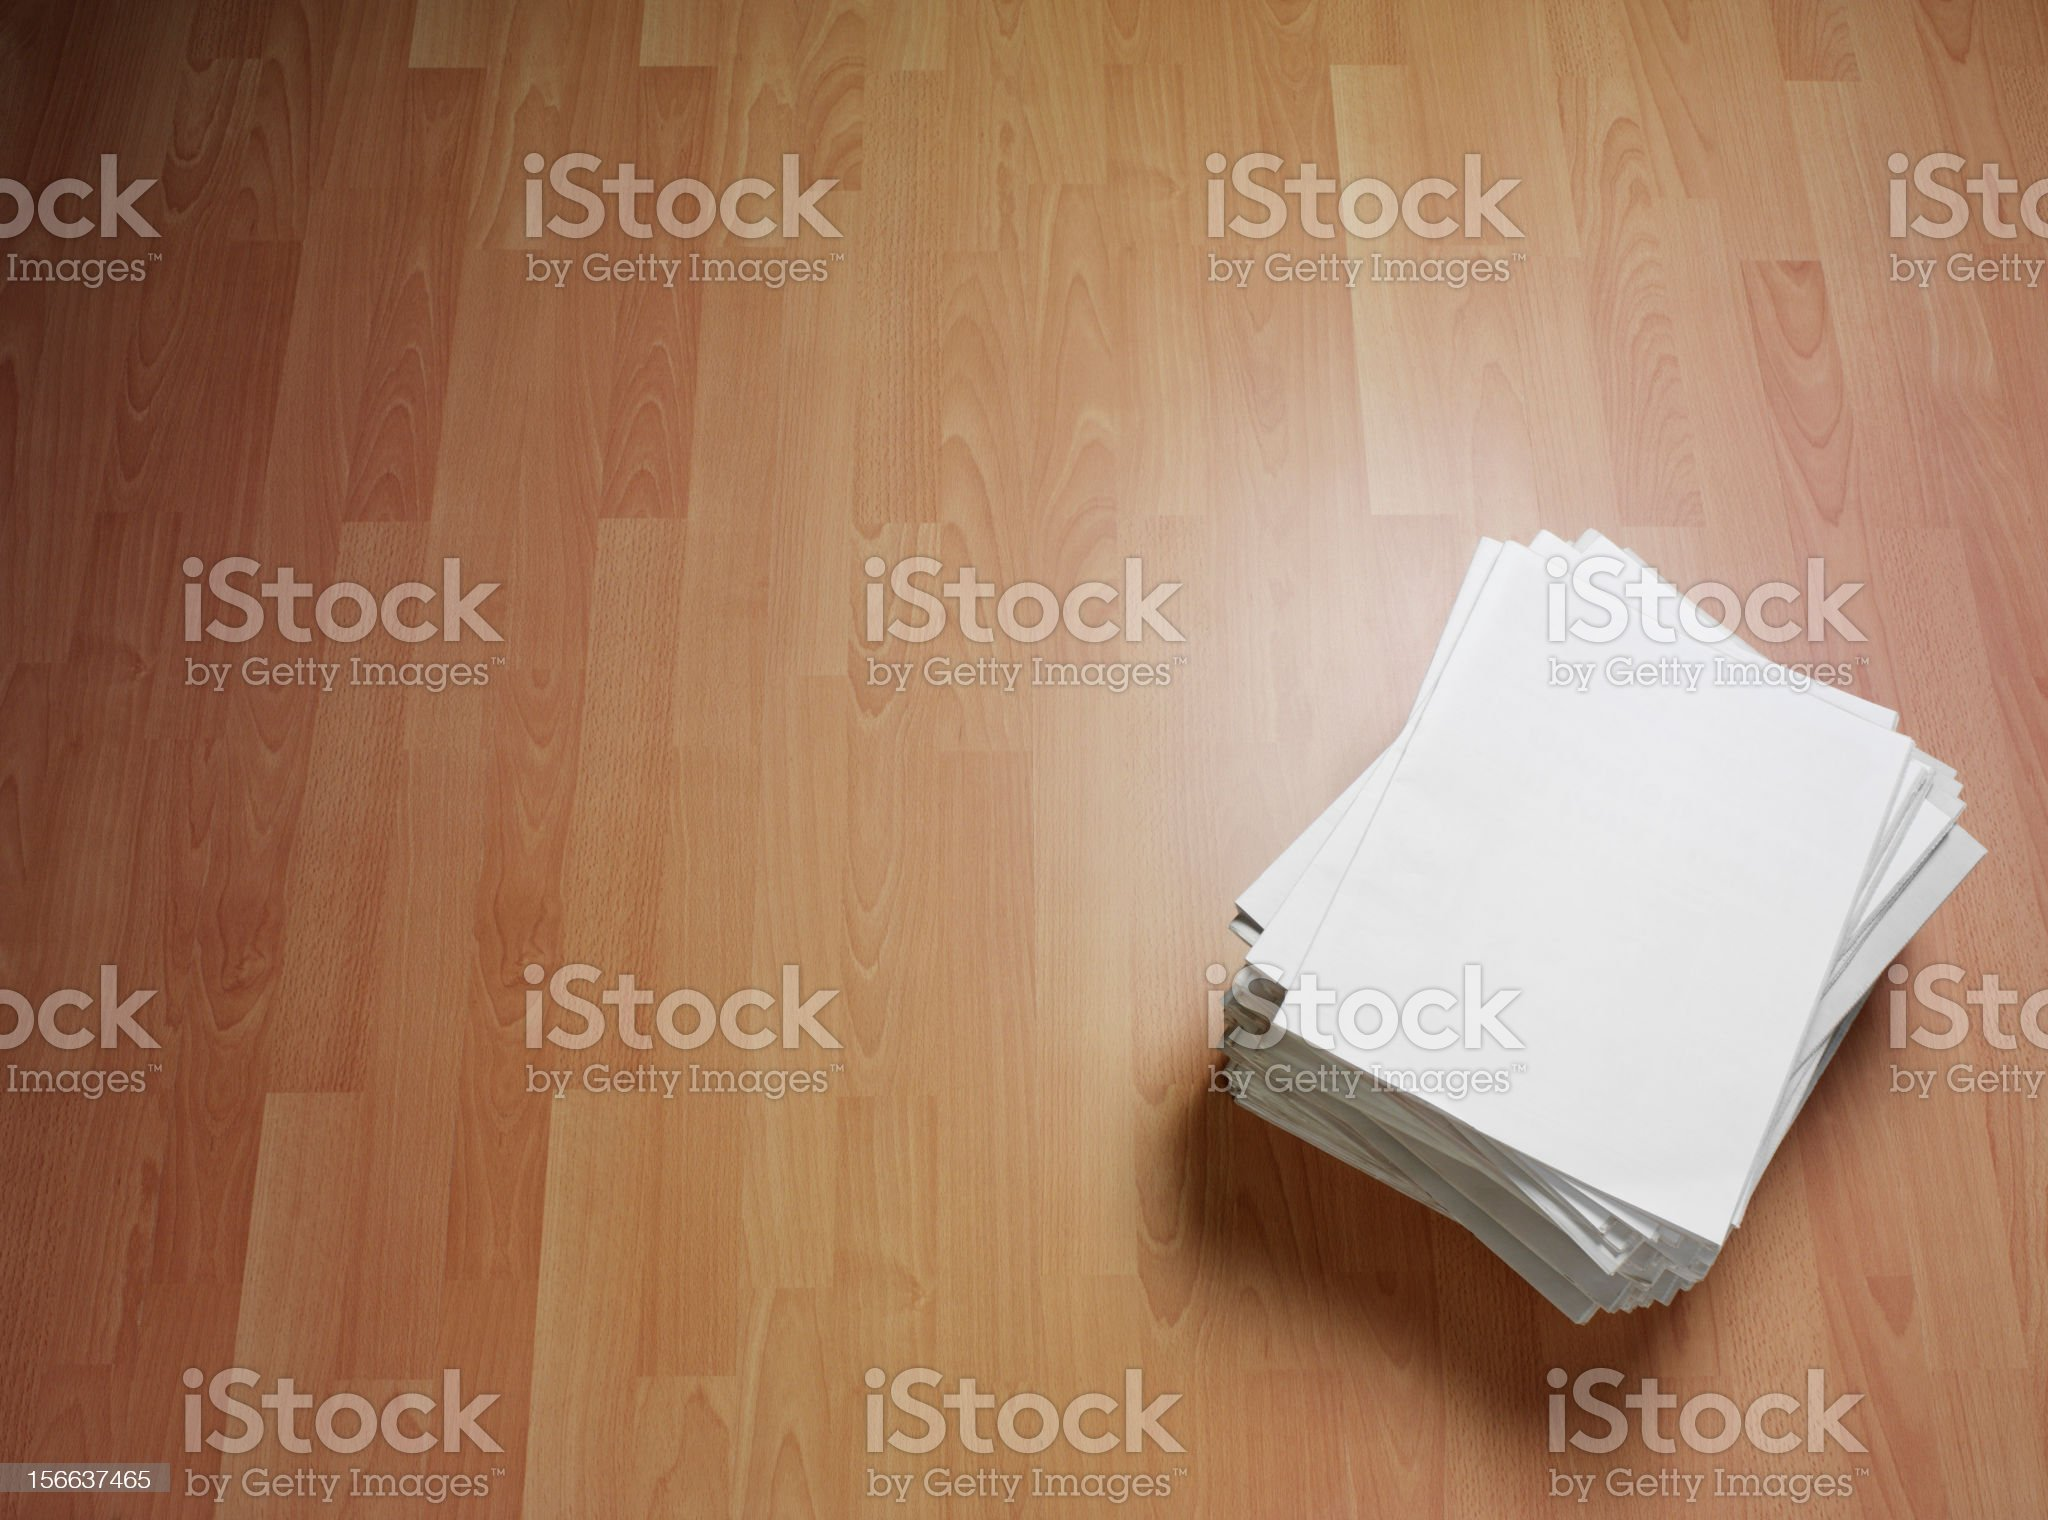 Newspapers on the Floor royalty-free stock photo